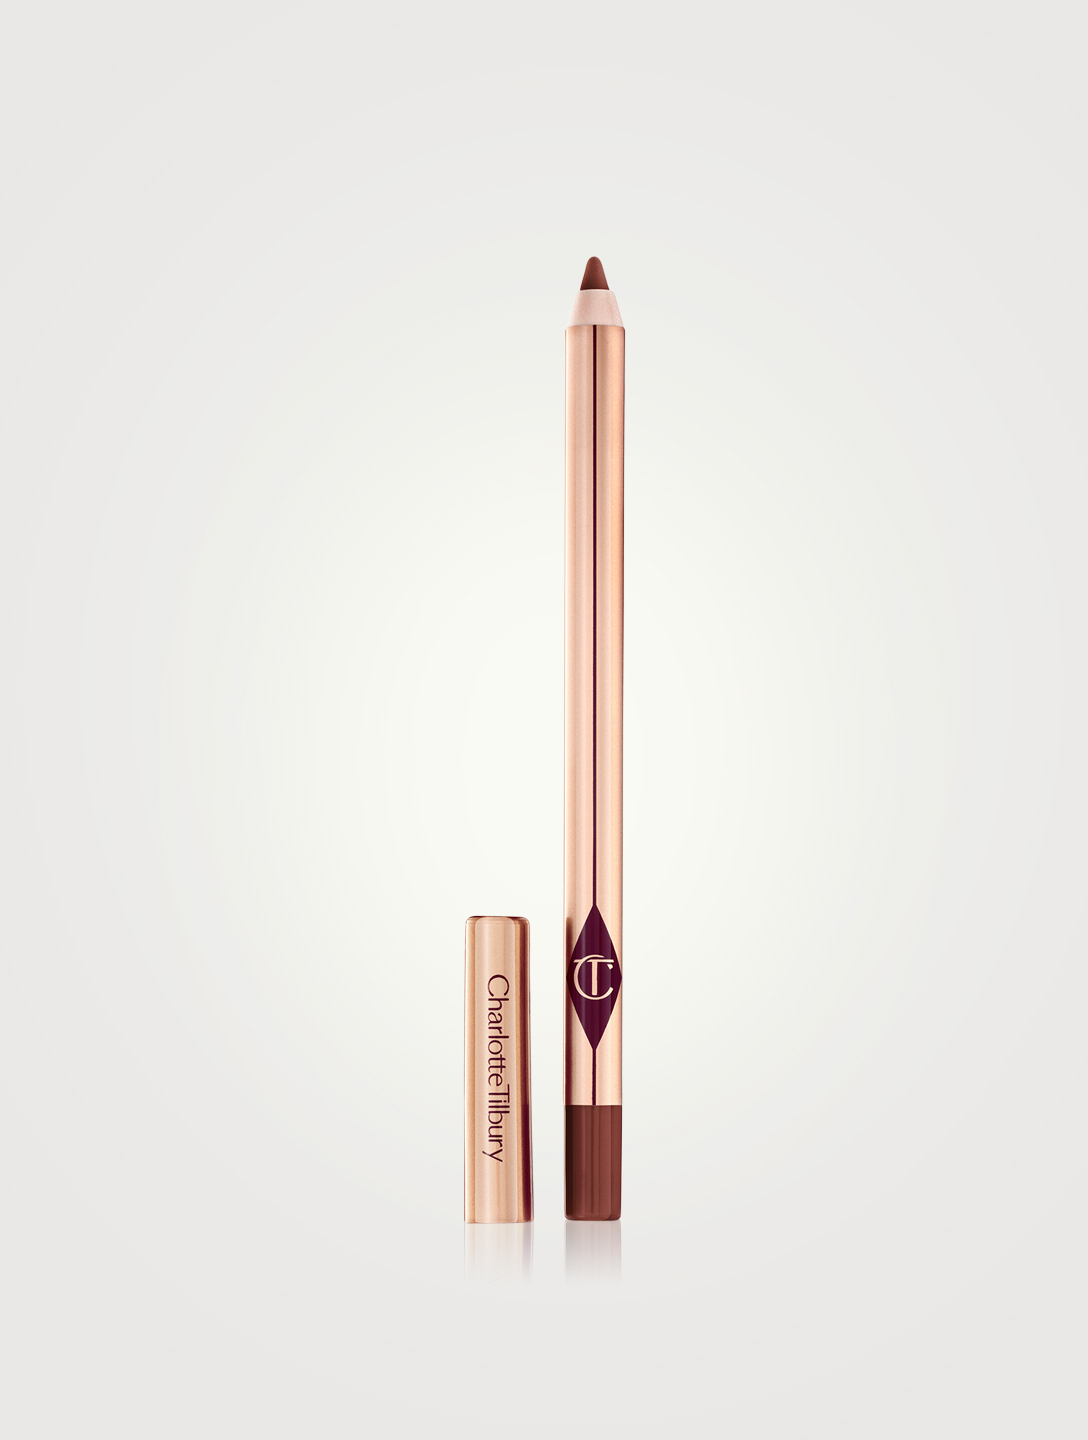 CHARLOTTE TILBURY Lip Cheat Lip Liner Beauty Pink